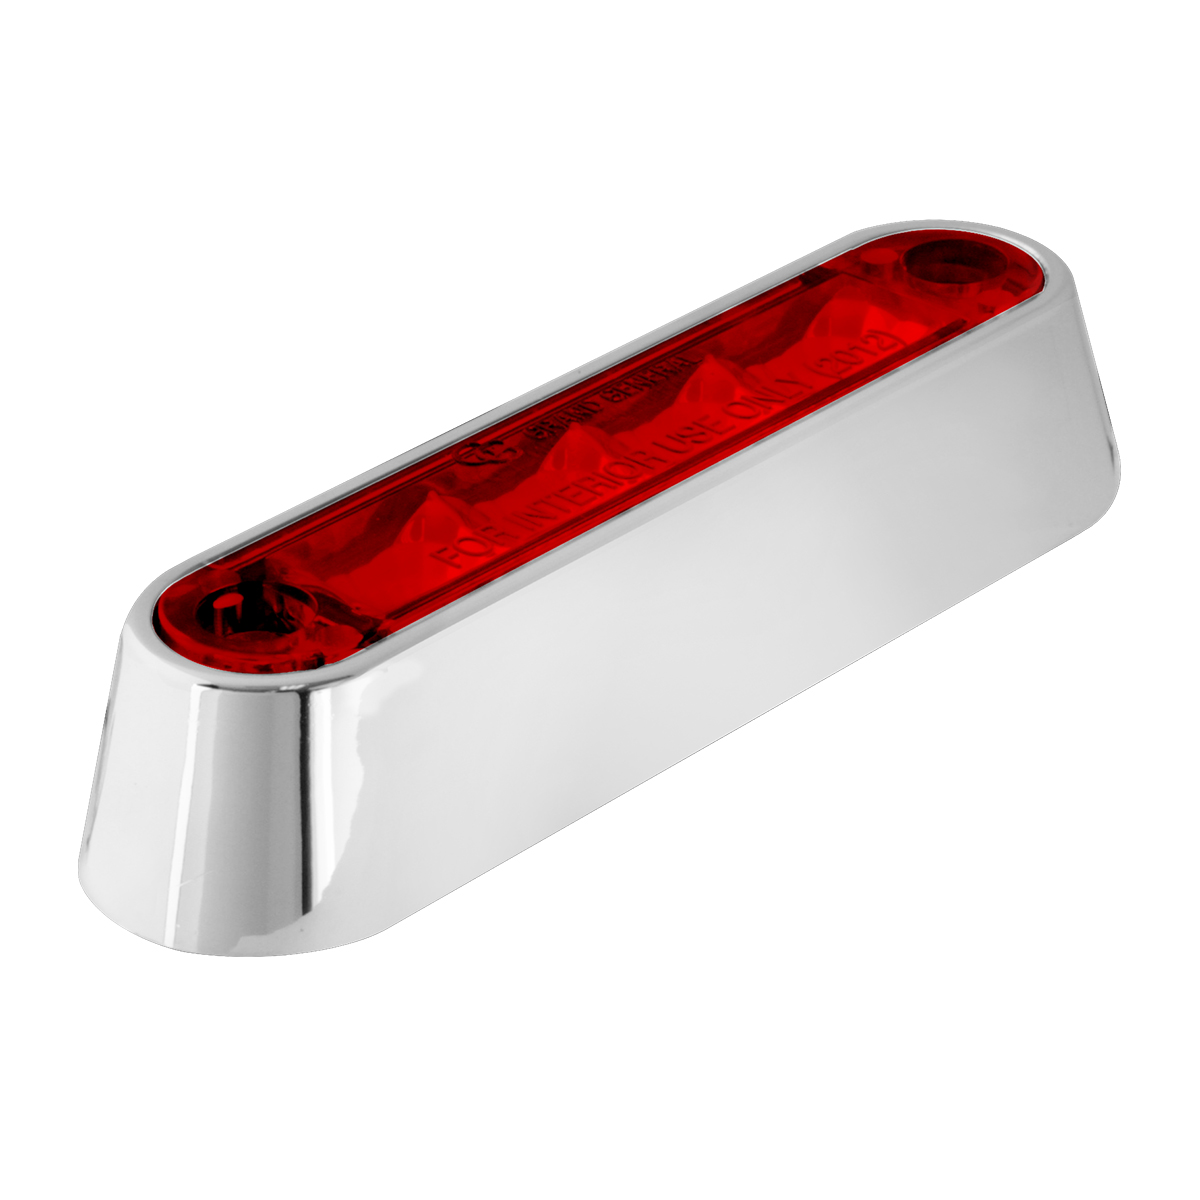 "74802 3.5"" Dual Function LED Light in Red/Red with Chrome Plastic Bezel"